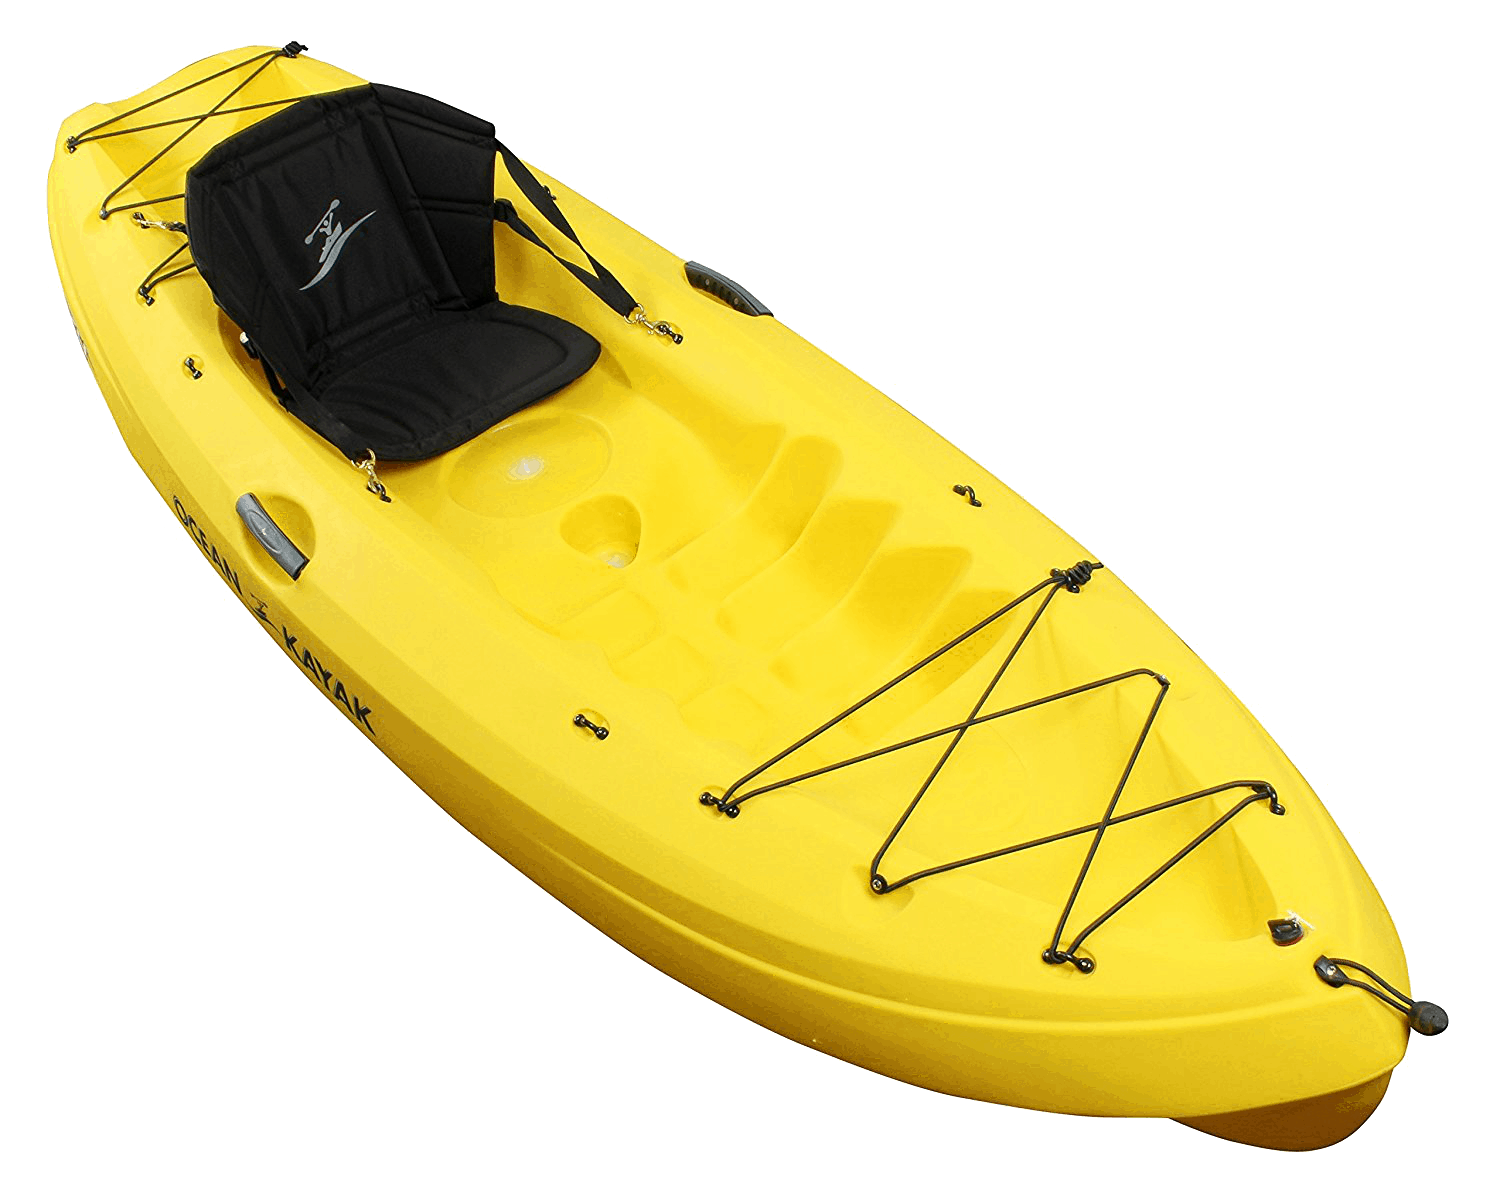 1 Ocean Kayak Frenzy Best Kayak